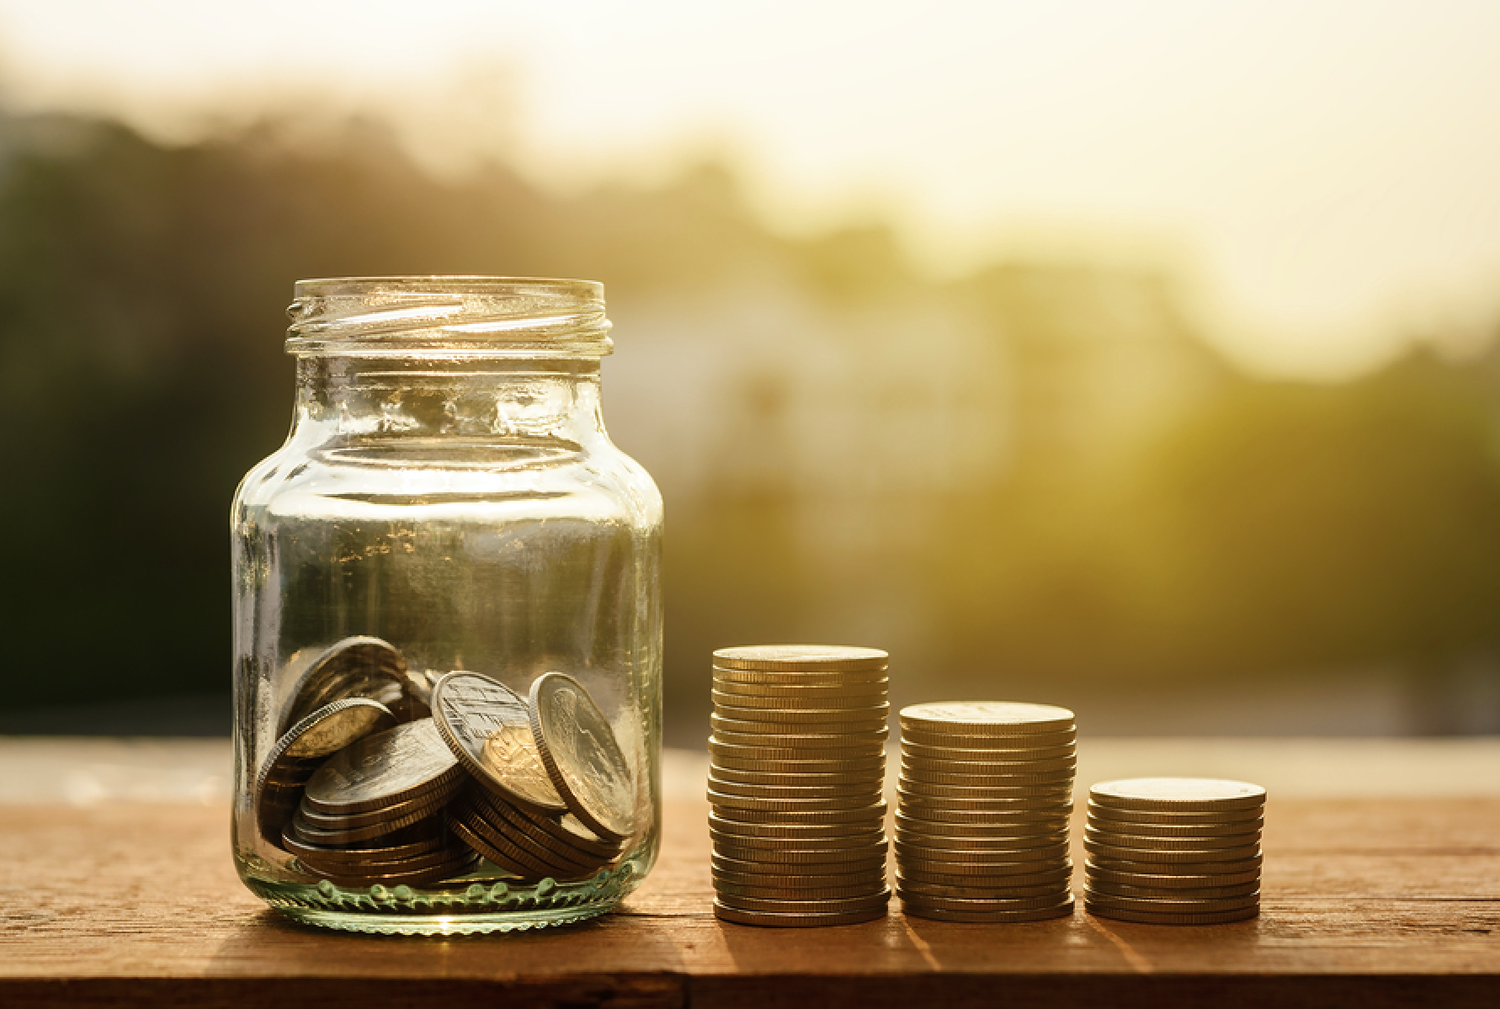 Jar of coins for small business funding